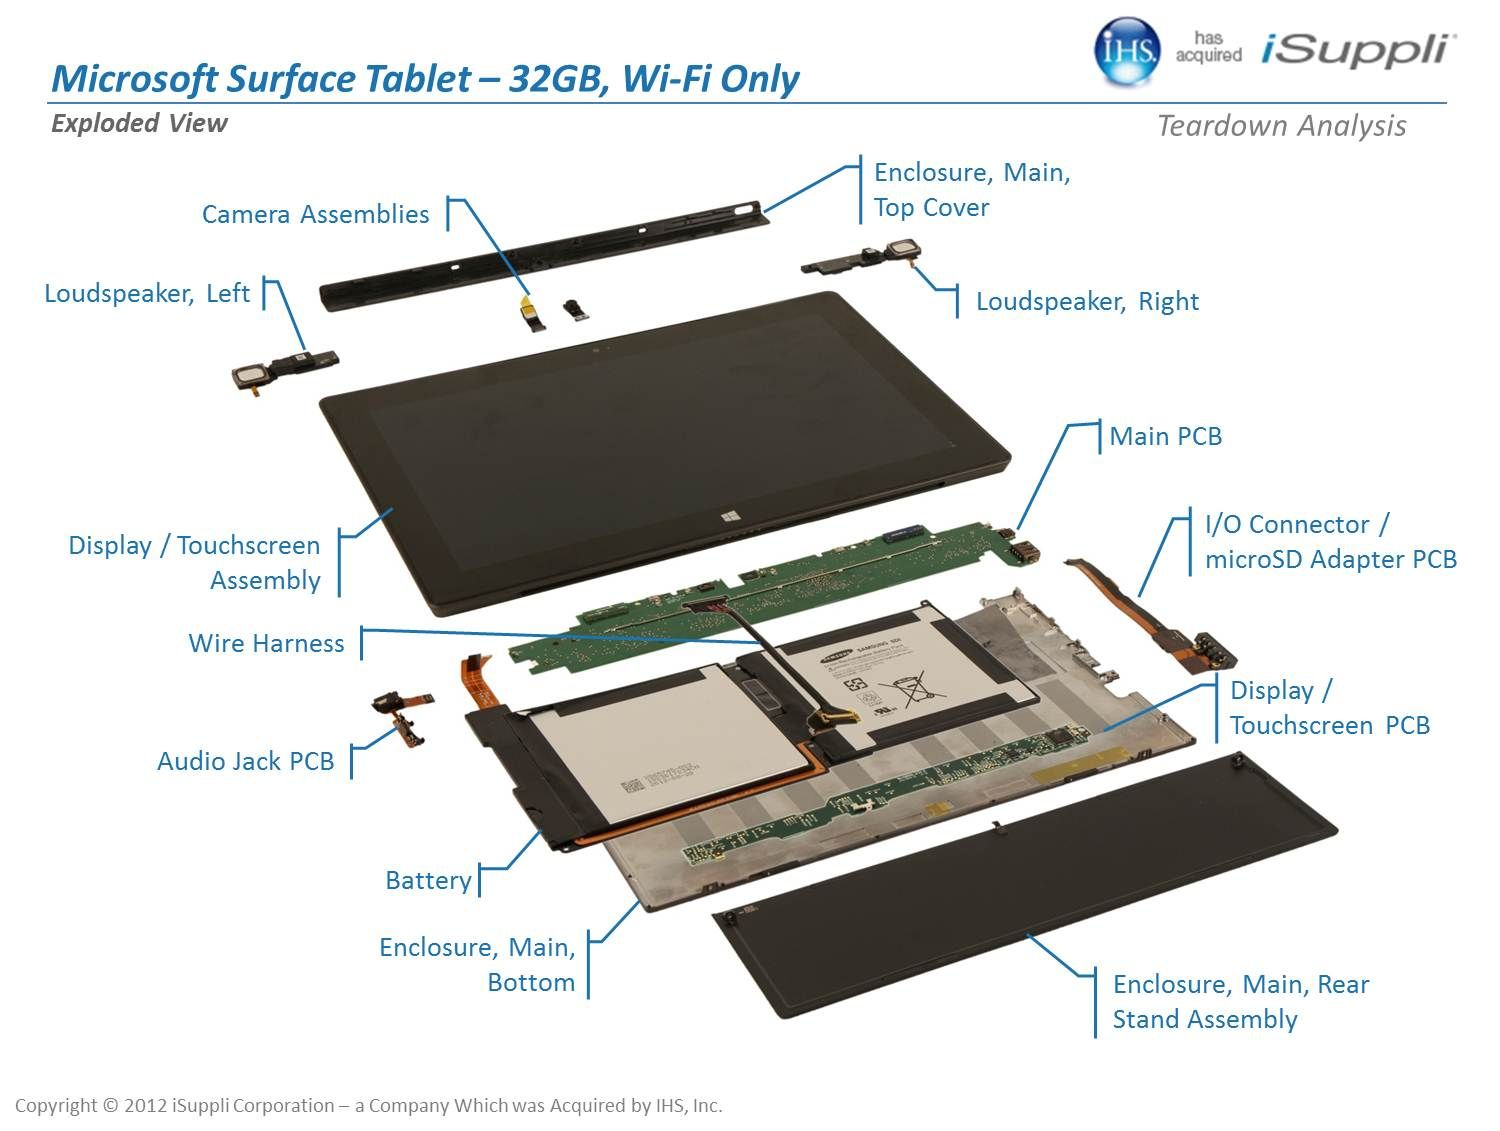 d1a30deb1fa3e15f2c1496a5ae99351d microsoft surface tablet_teardown2 \u003cdissasembly\u003e pinterest Microsoft Surface Pro at mifinder.co